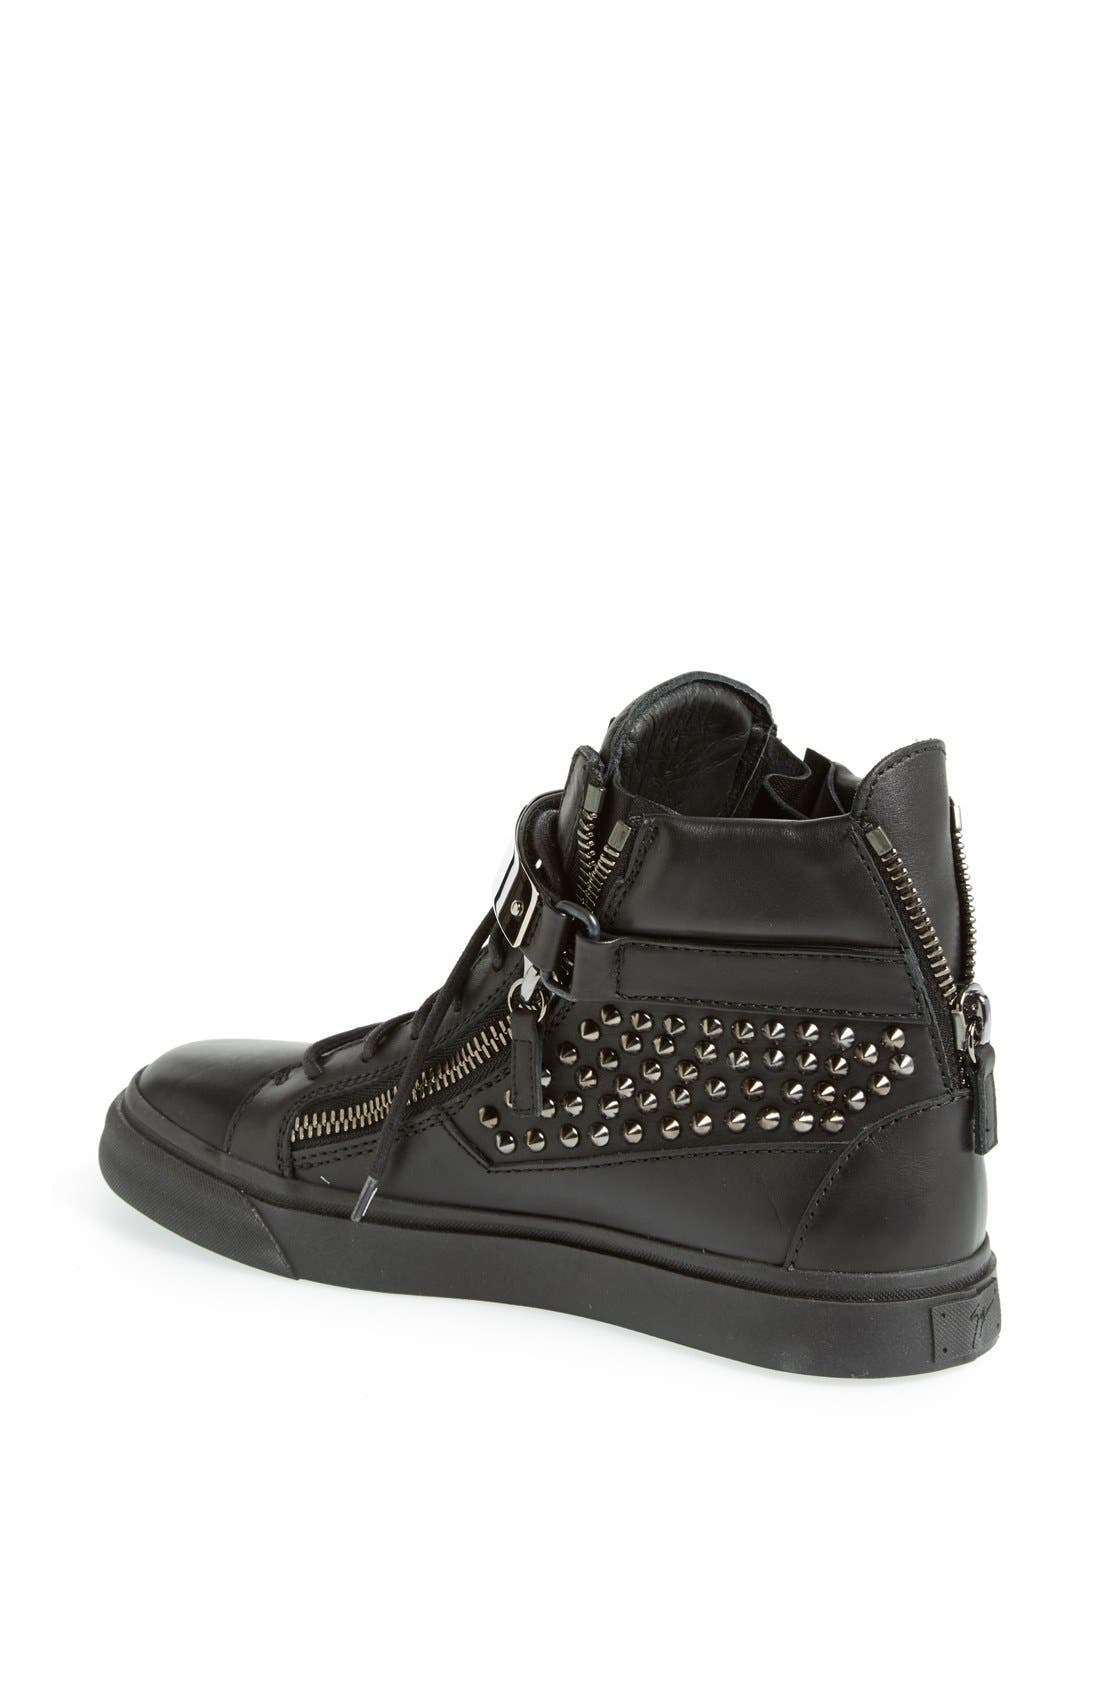 Alternate Image 2  - Giuseppe Zanotti Studded High Top Sneaker (Women)